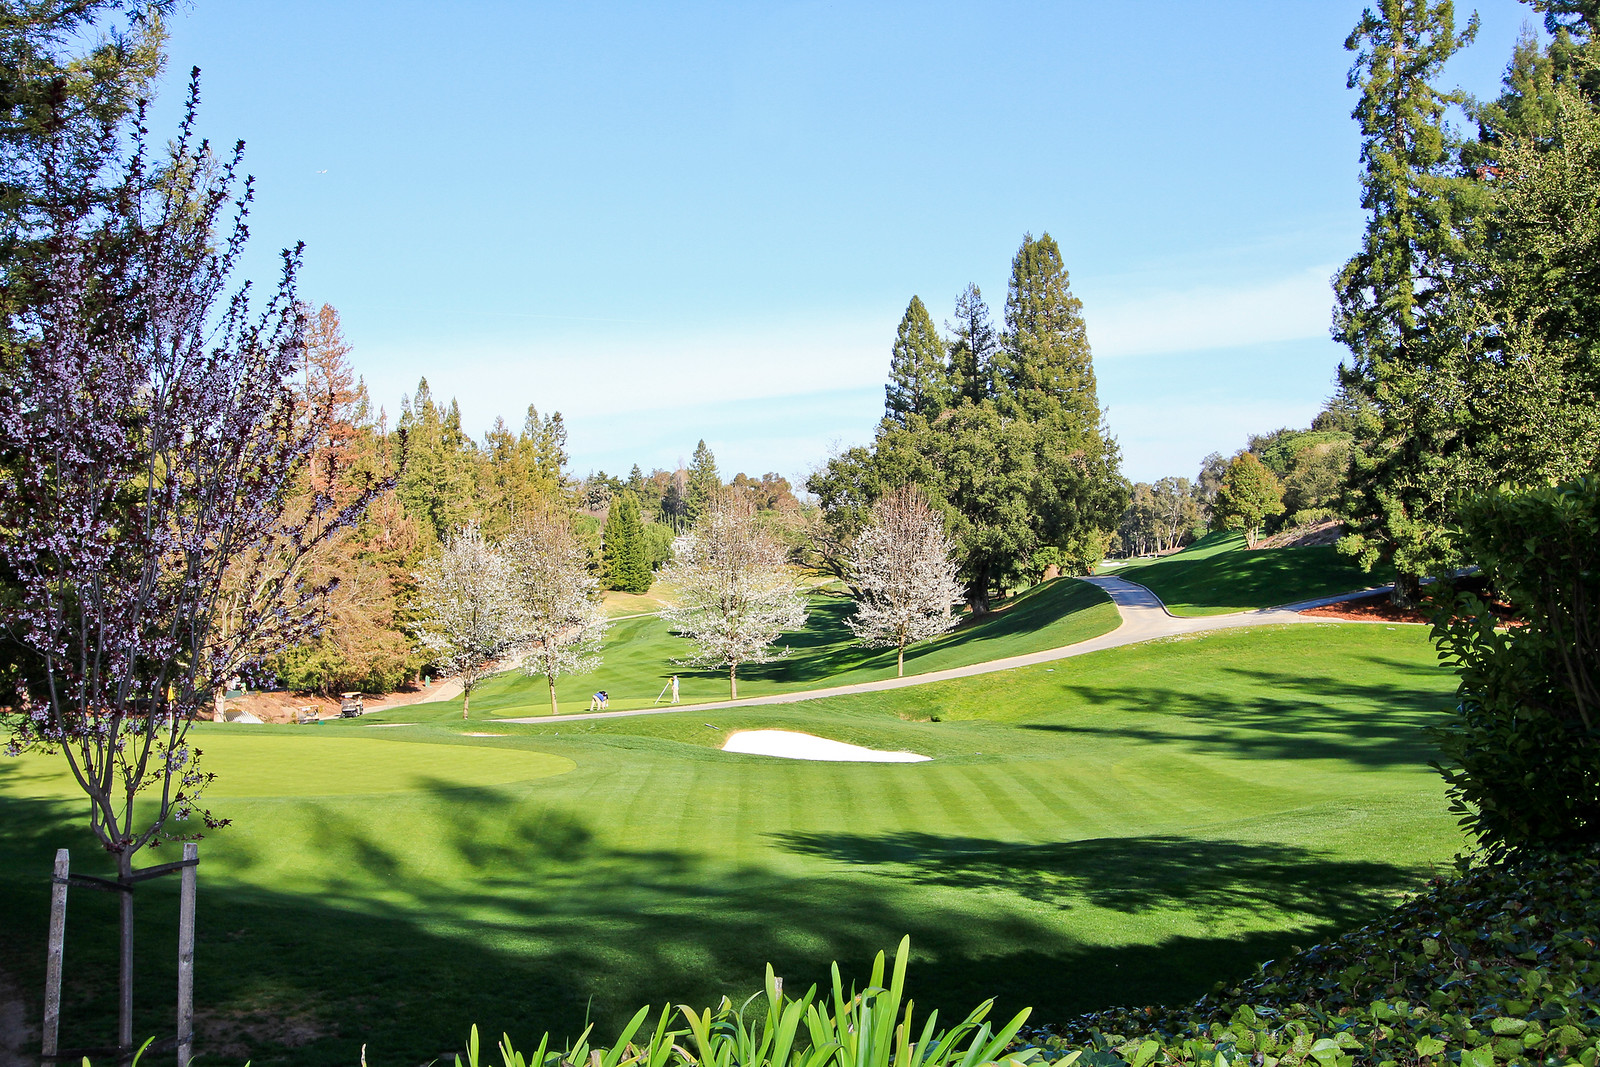 Sharon Park Golf.jpg